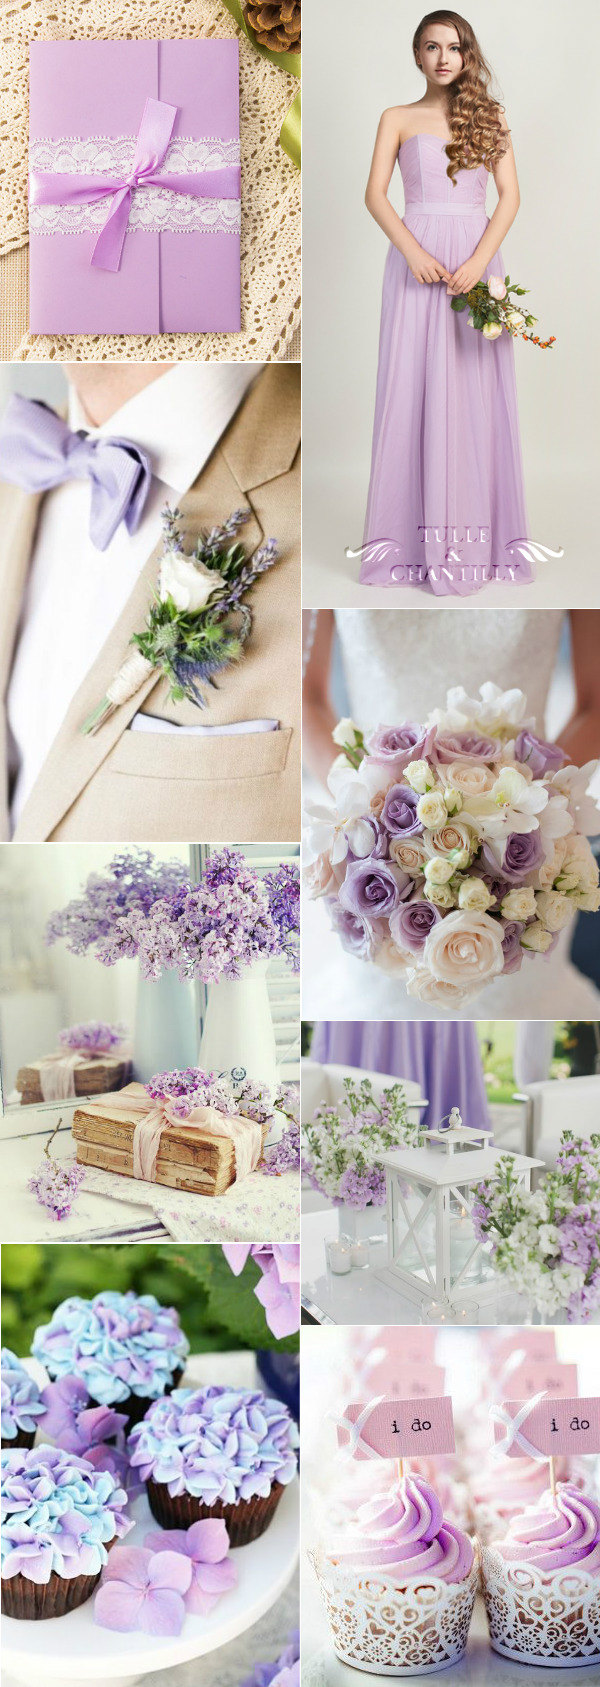 shabby-chic-lilac-light-purple-wedding-ideas